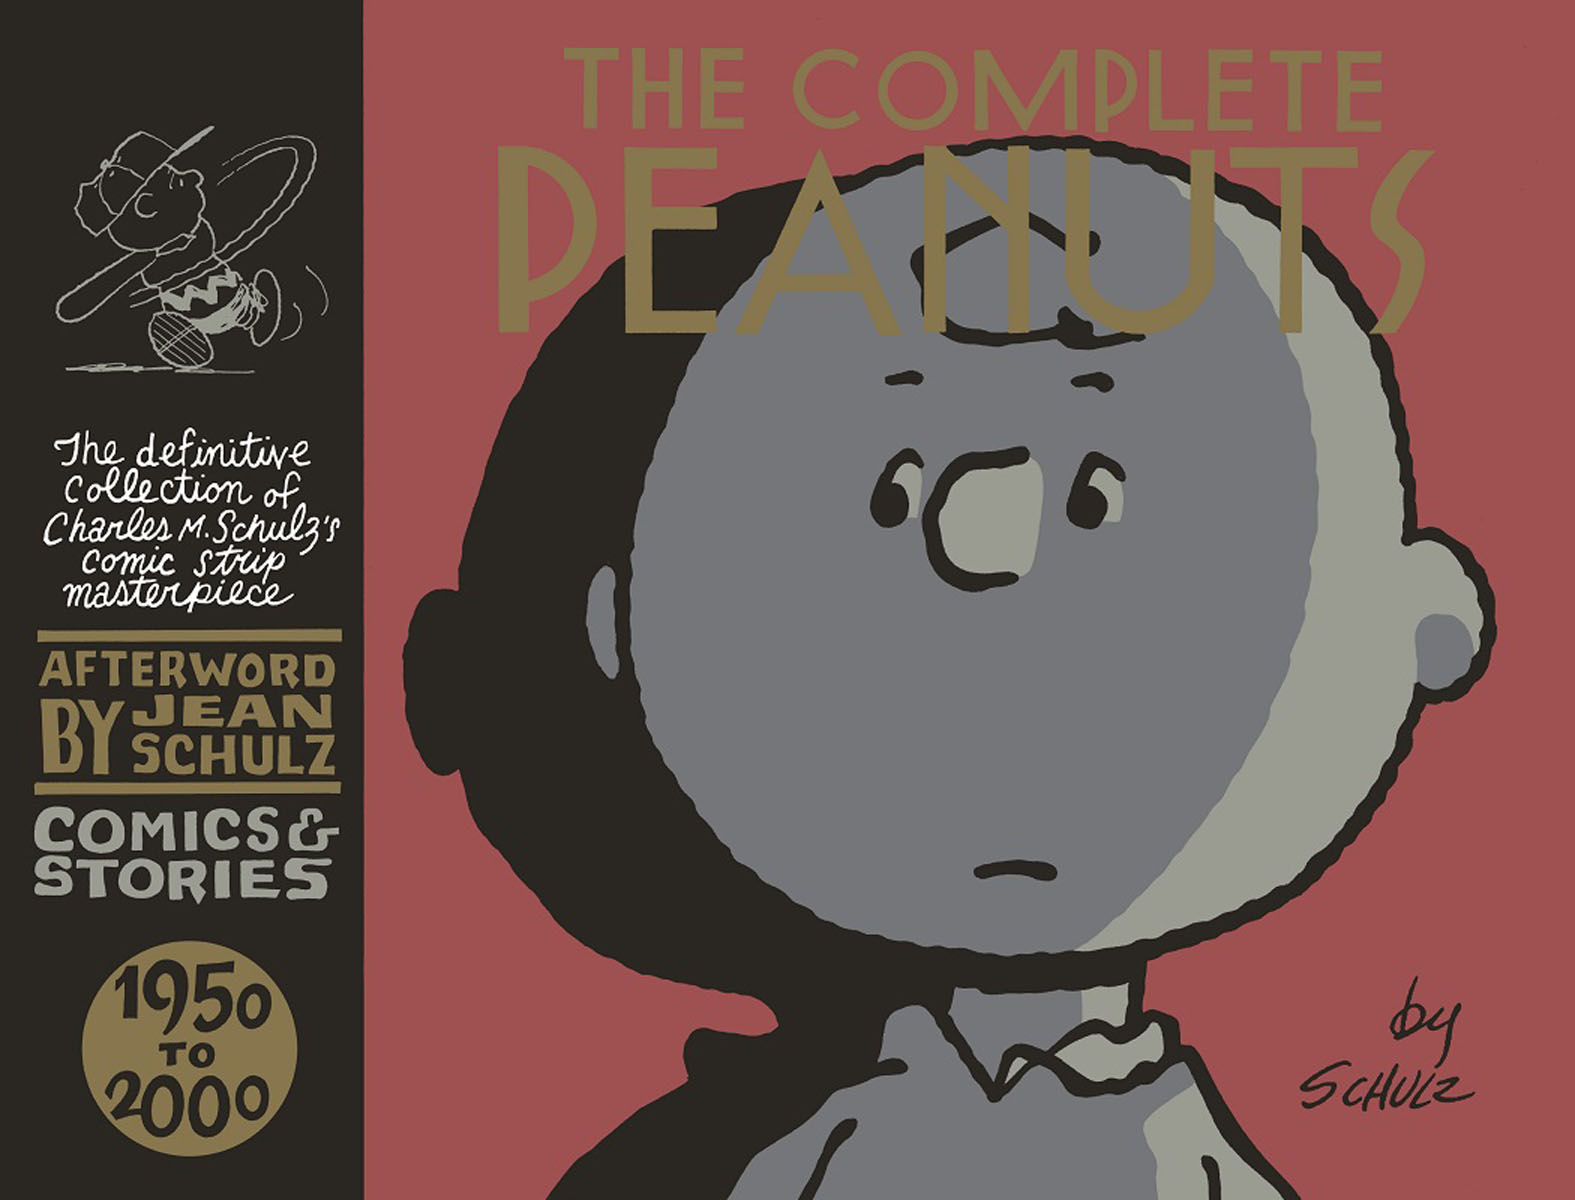 The Complete Peanuts: Comics & Stories Vol. 26 jewish images in the comics